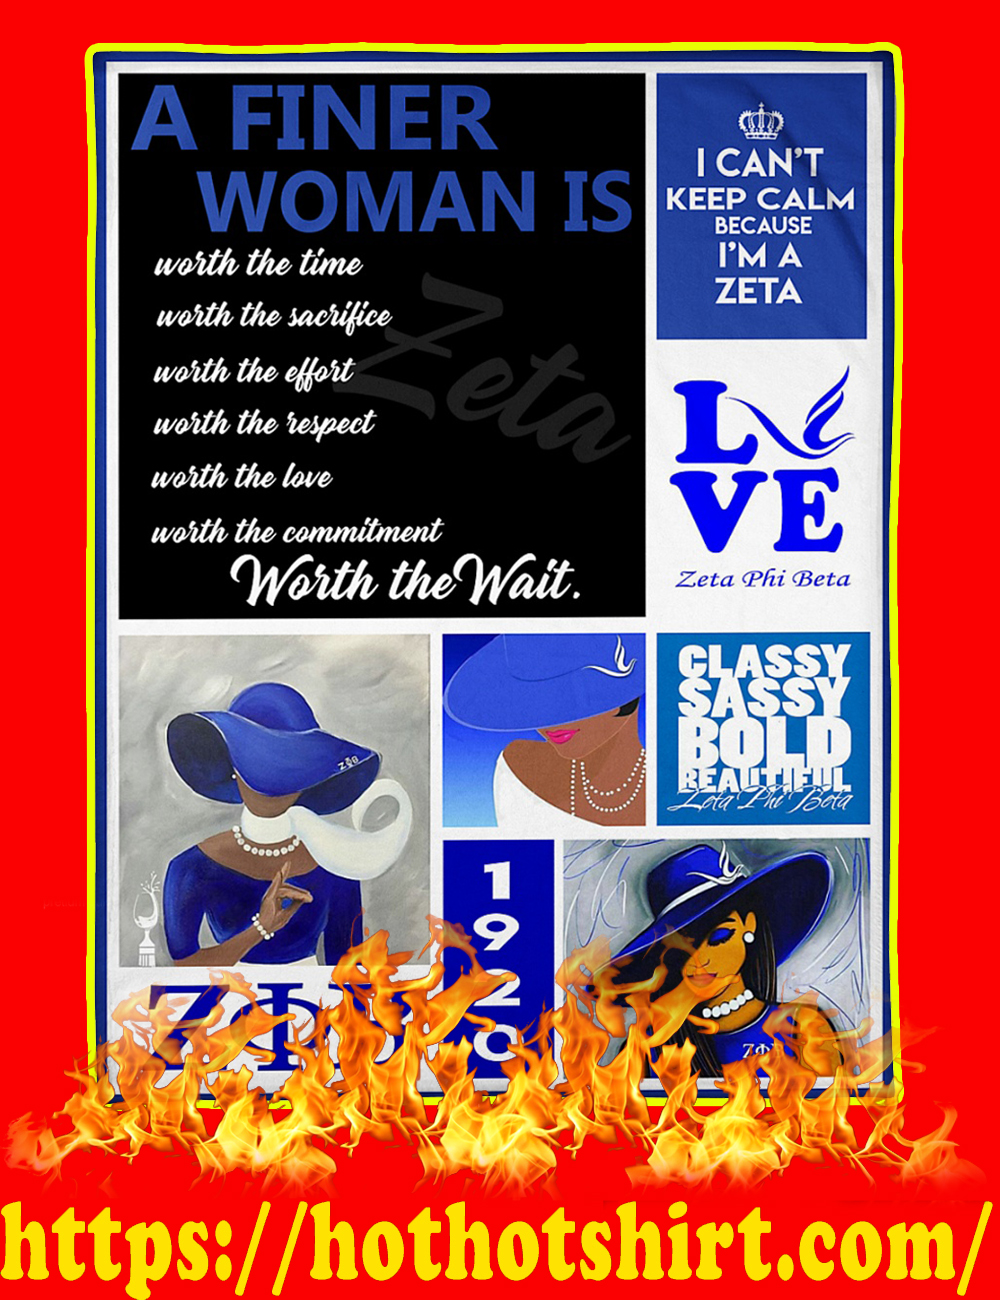 A Finer Woman Is Worth The Time Blanket